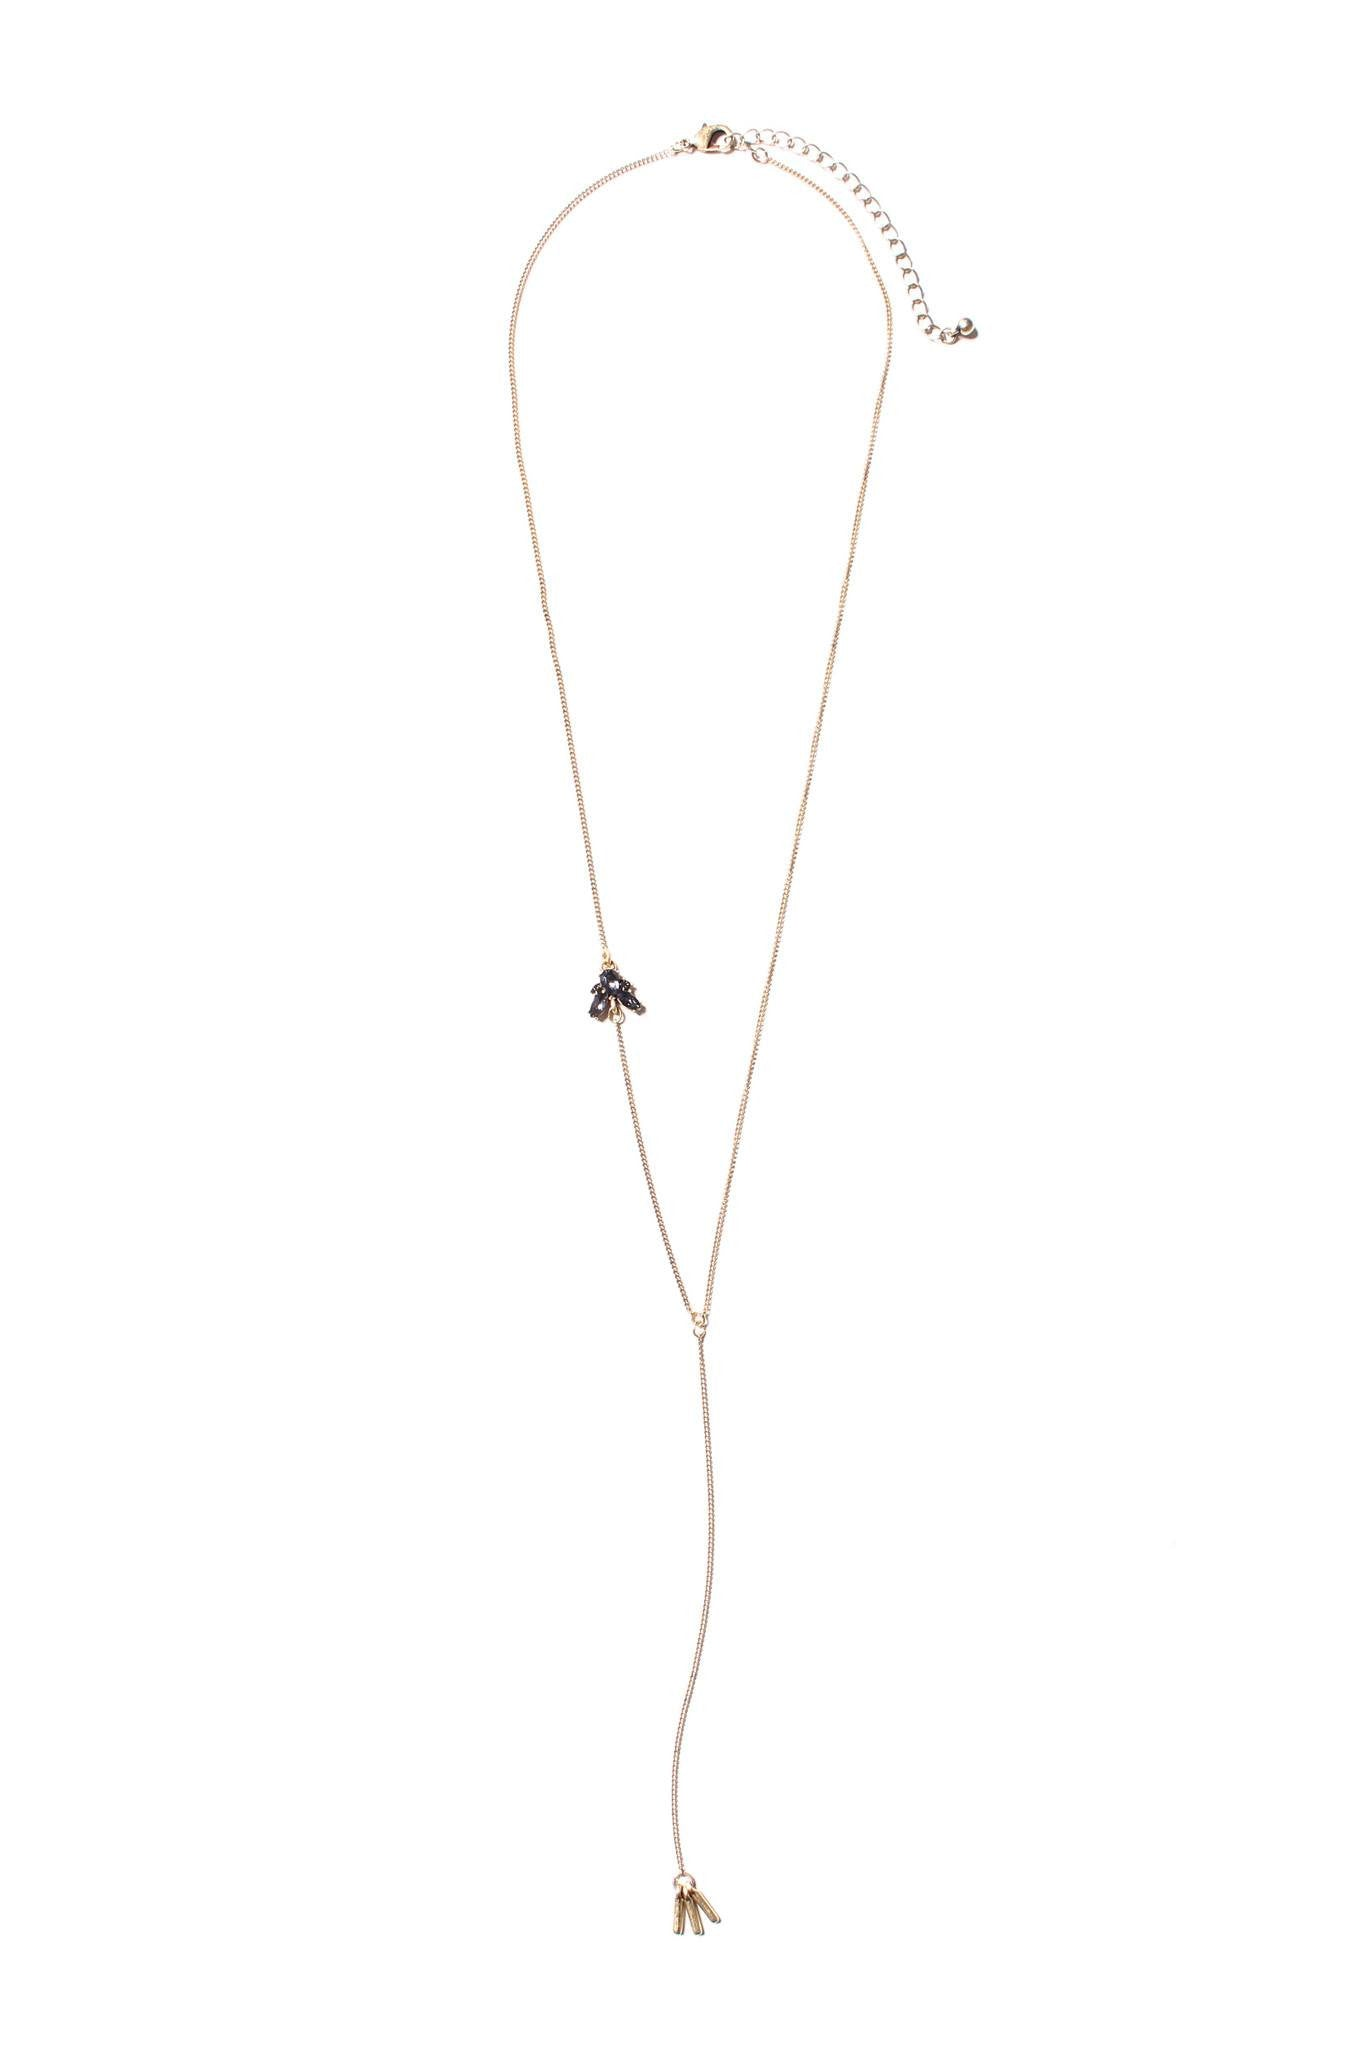 All Eyes On You Necklace - Black